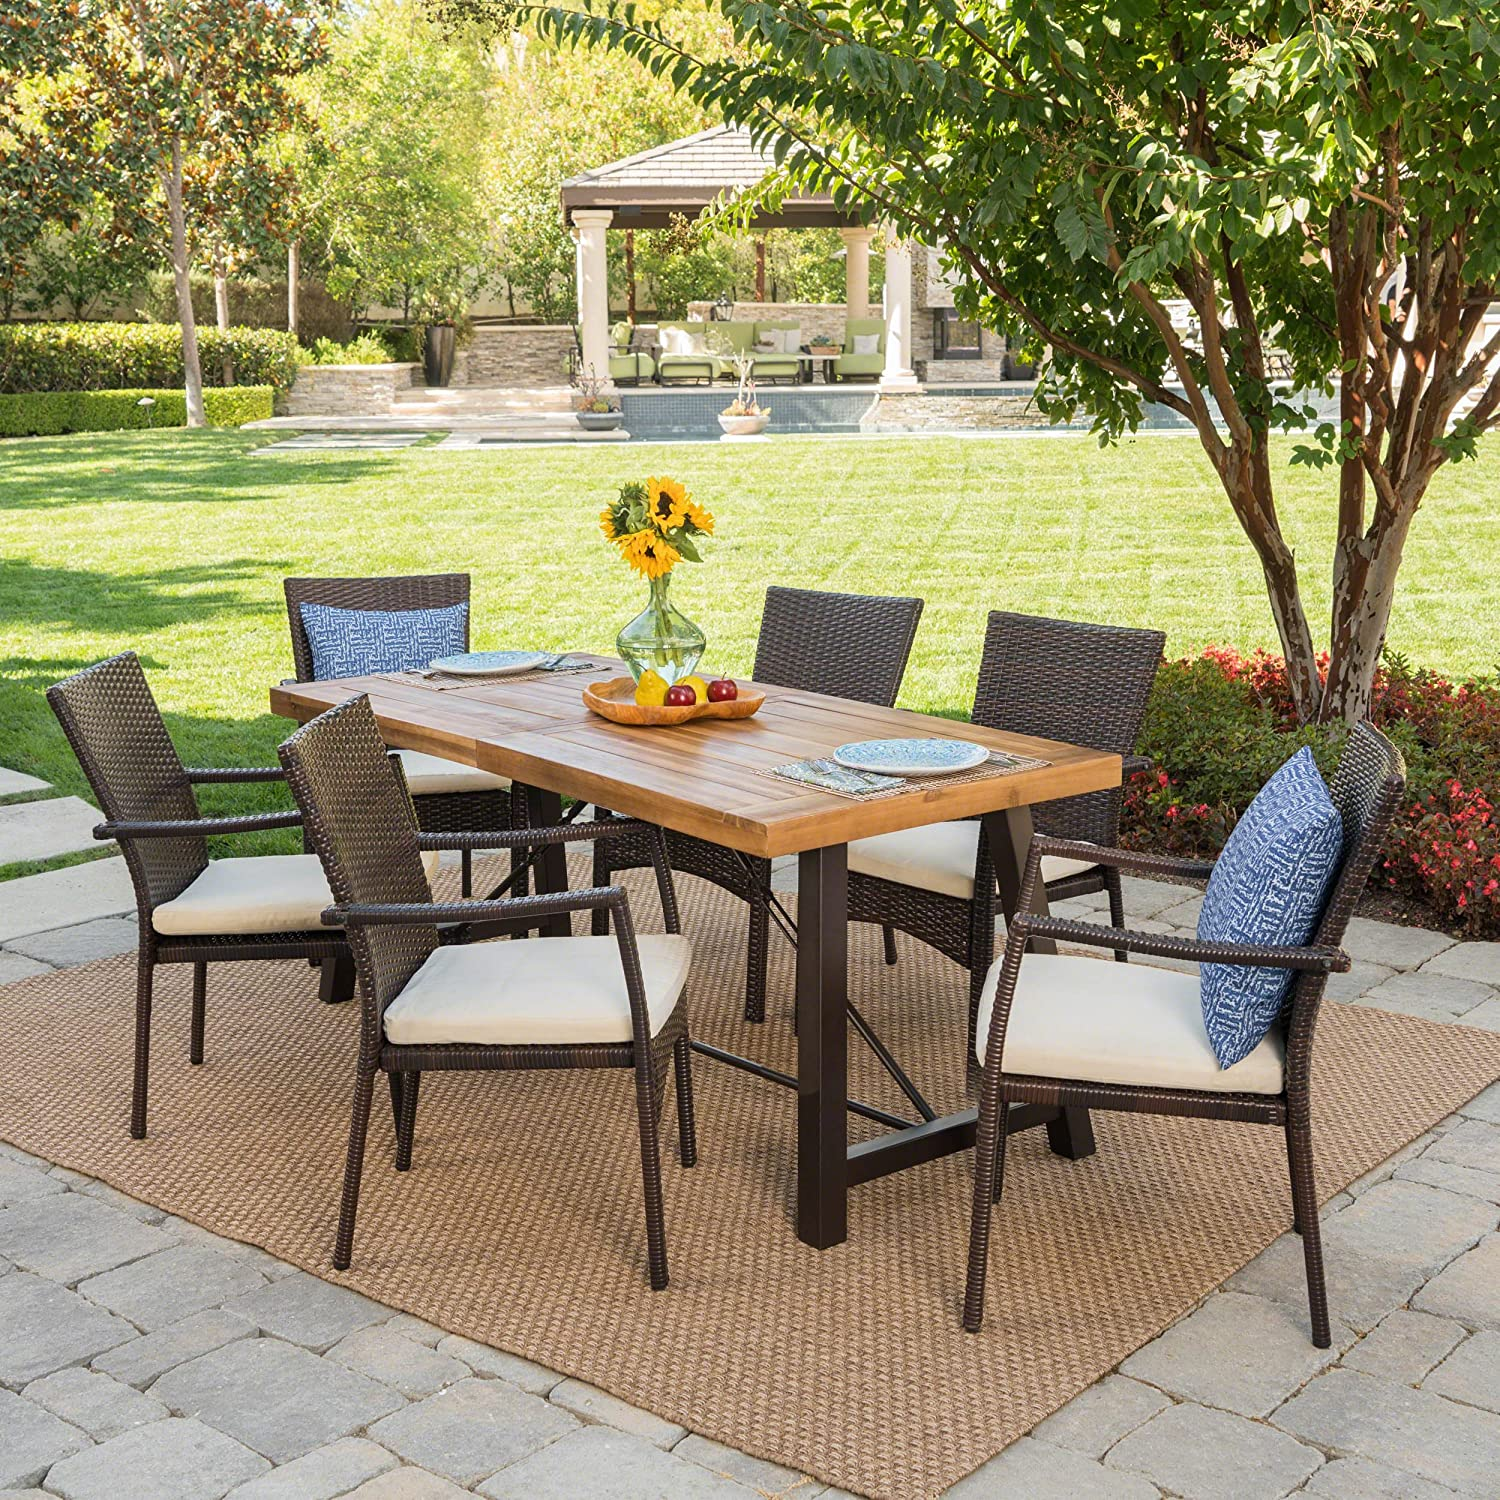 Best Patio Dining Sets 2020 | Exclusive Outdoor Dining Set ...